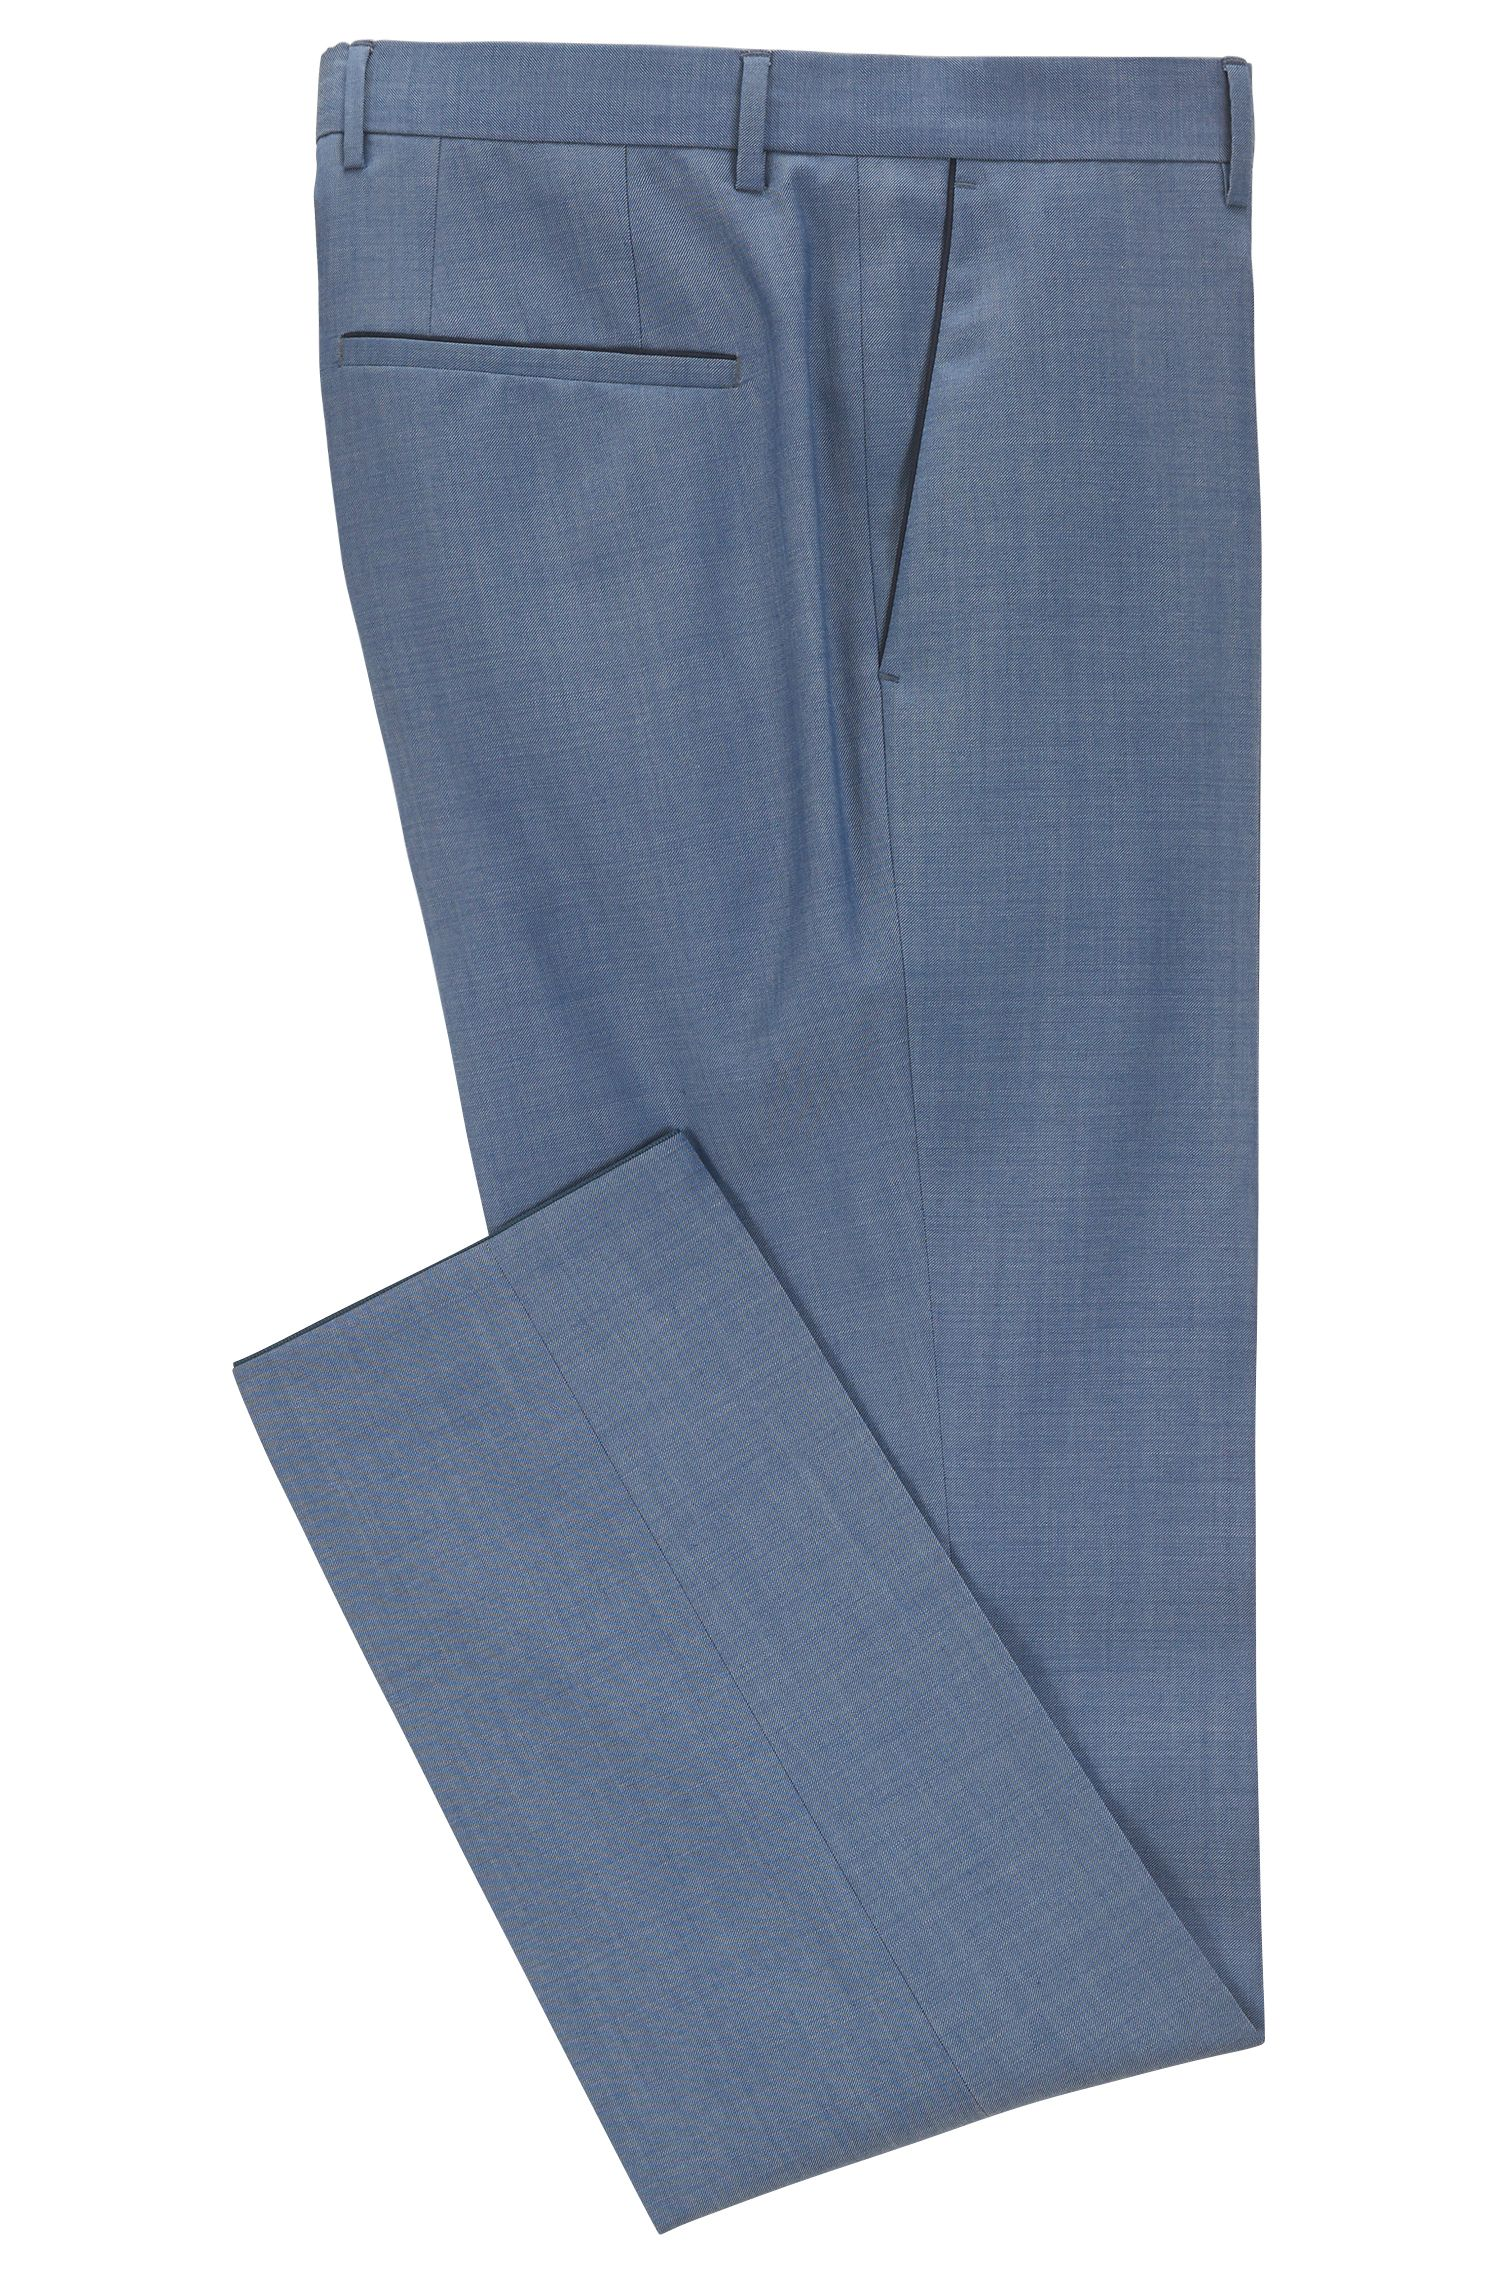 Heather Virgin Wool Dress Pant, Slim Fit | Giro, Blue